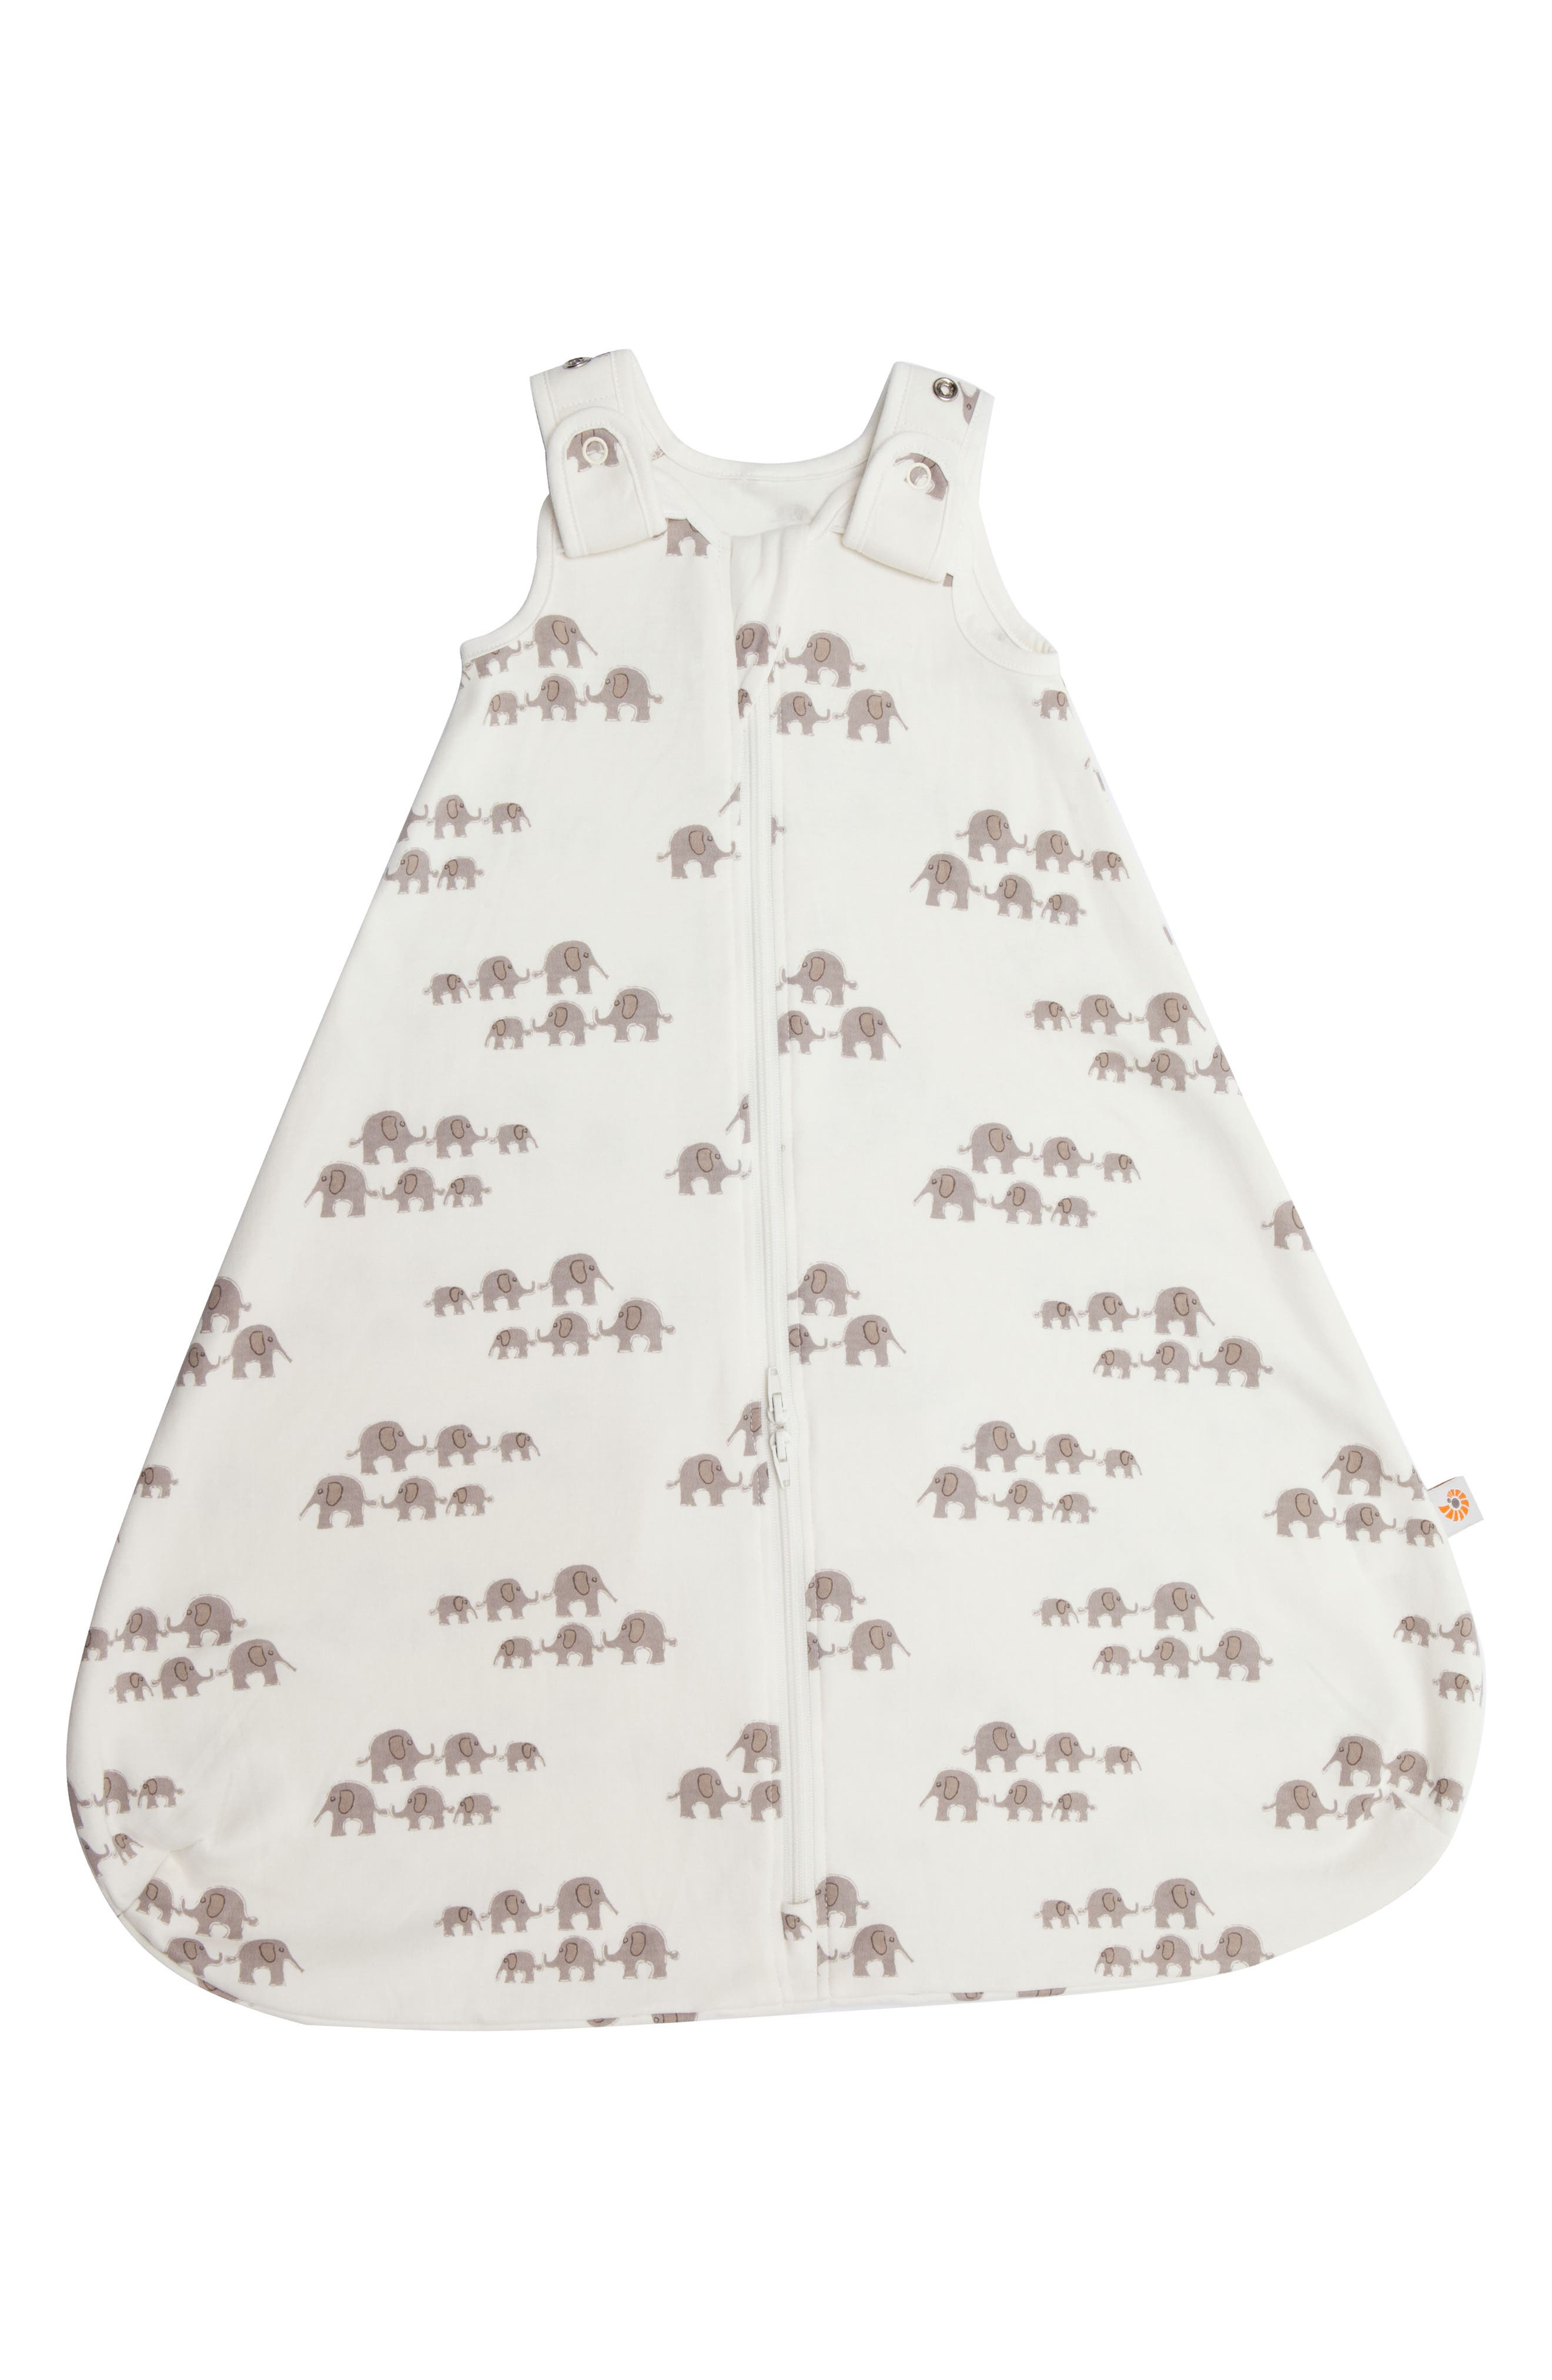 ERGObaby Elephant Print Wearable Blanket (Baby)